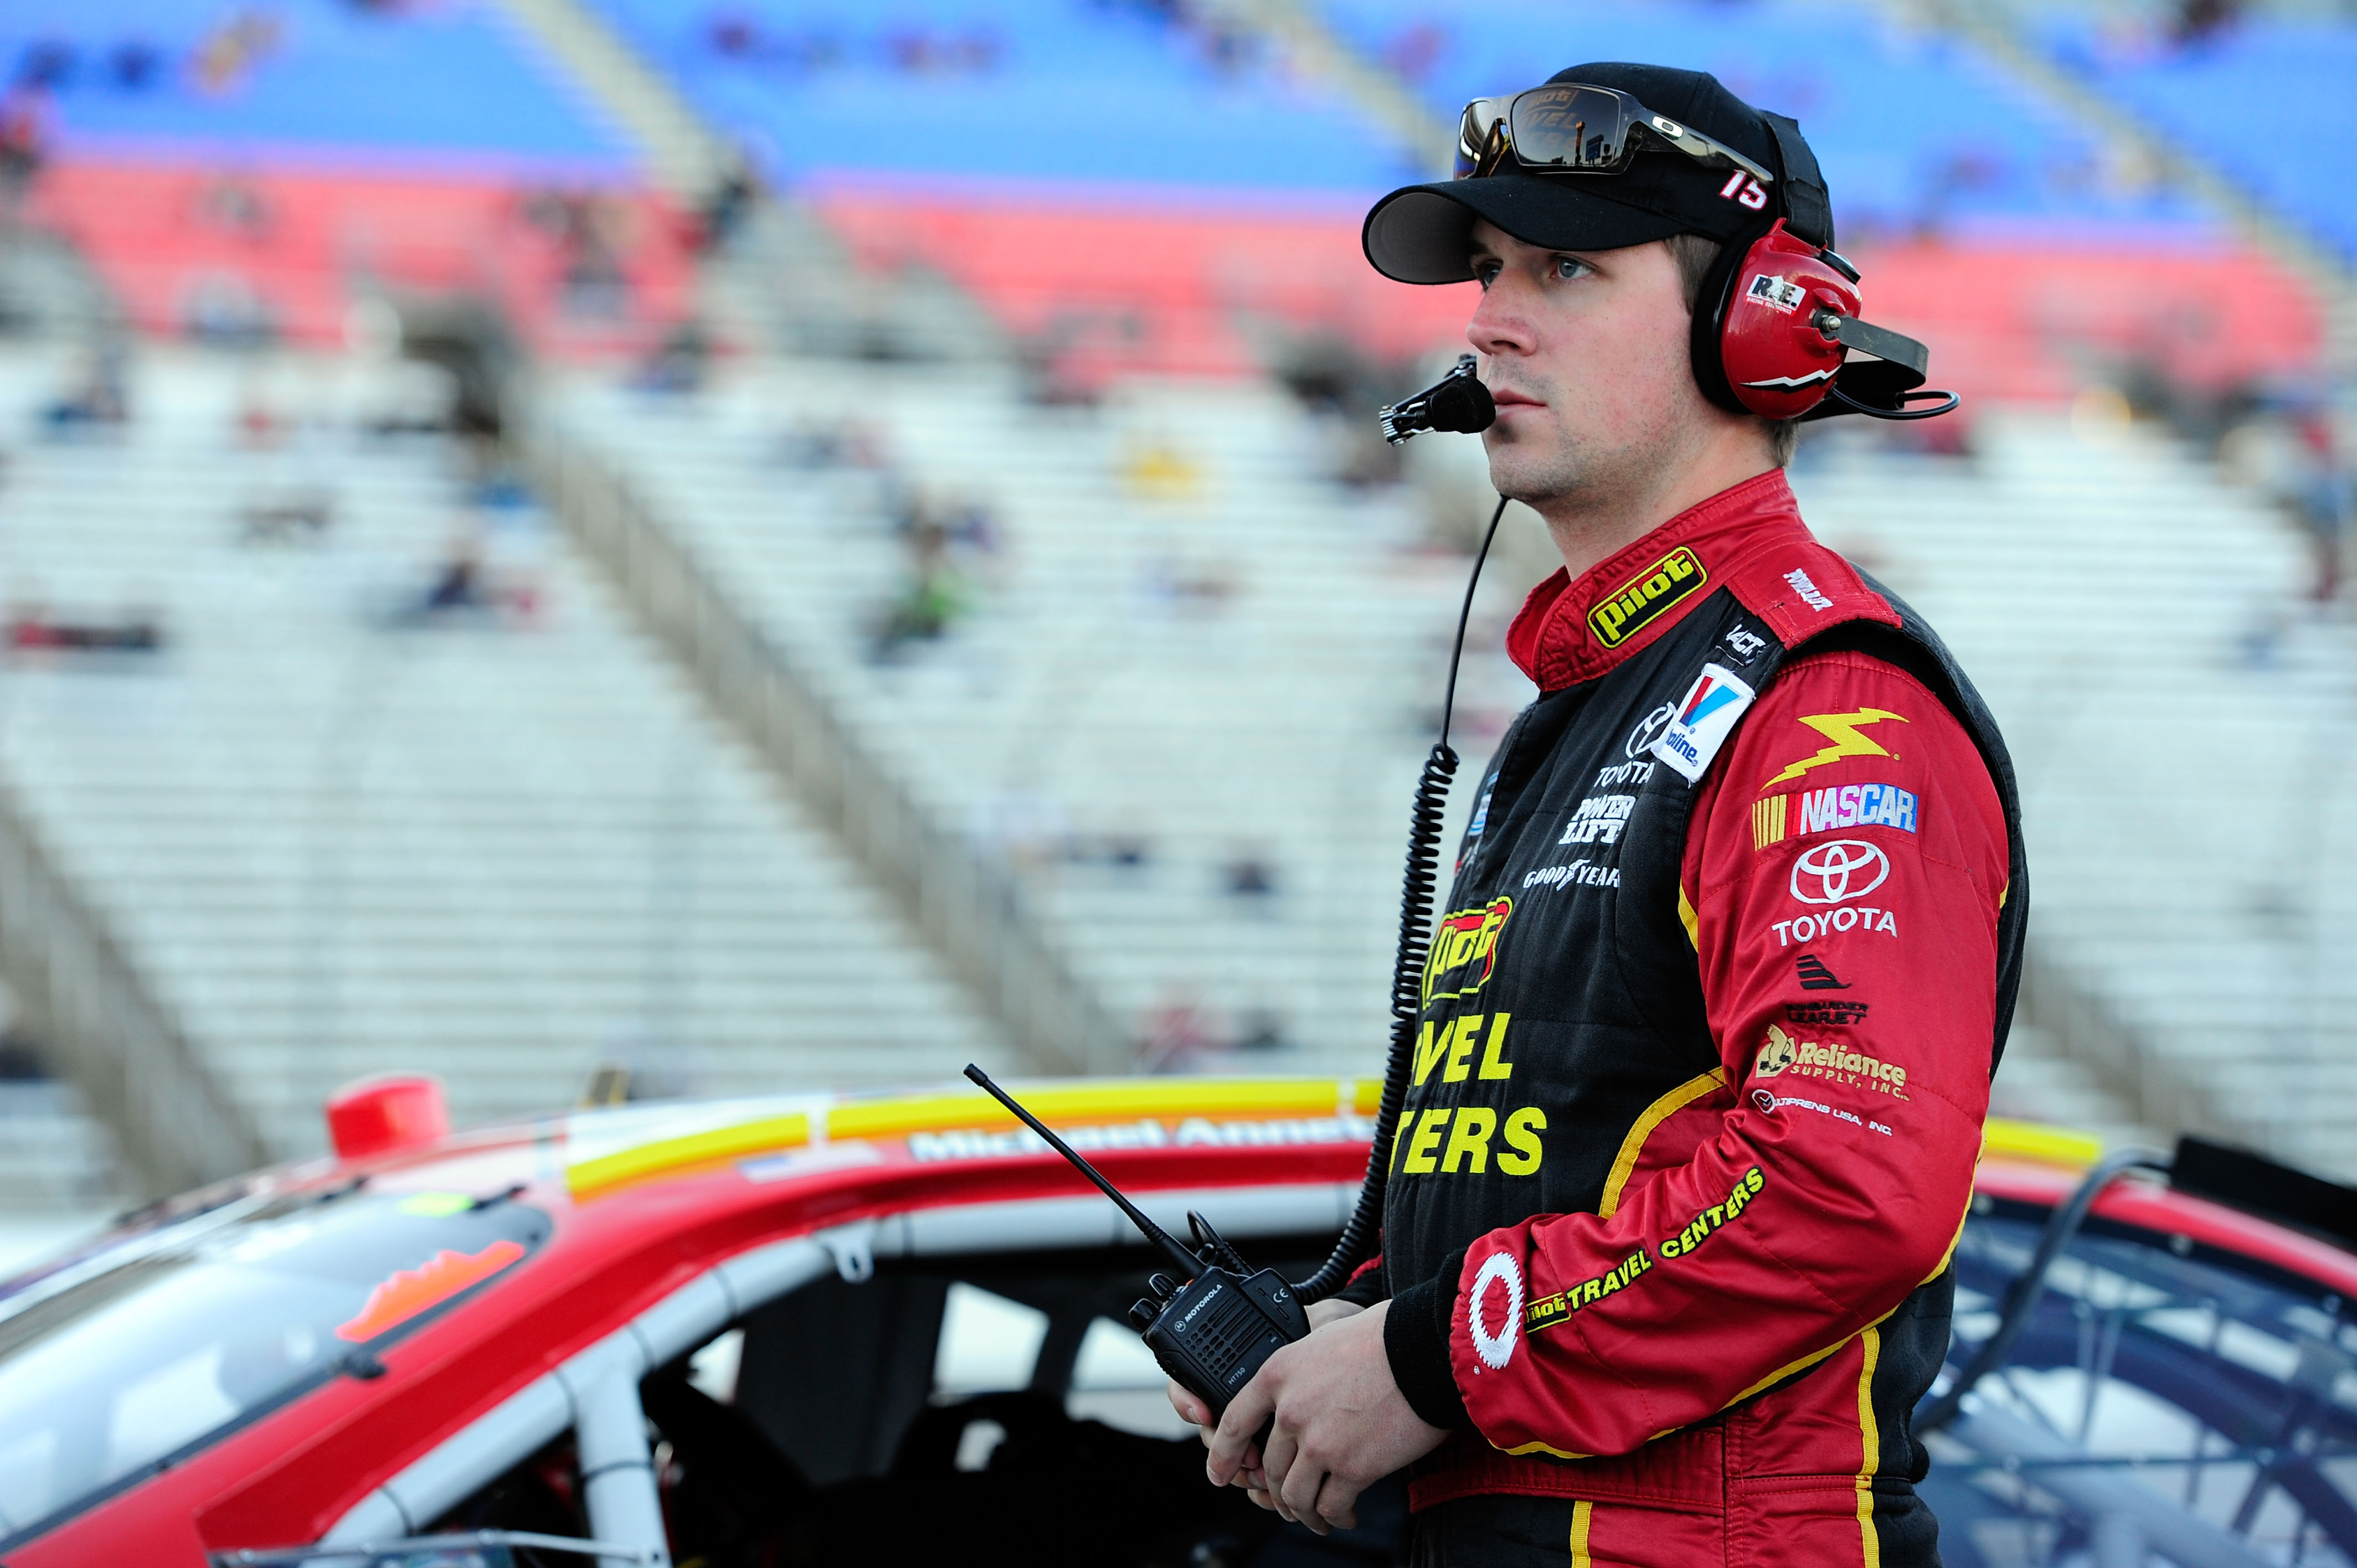 FORT WORTH, TX - NOVEMBER 05:  Michael Annett, driver of the #15 Pilot Flying J Coffee Toyota, stands on the grid during qualifying for the NASCAR Nationwide Series O'Reilly Auto Parts Challenge at Texas Motor Speedway on November 5, 2010 in Fort Worth, T